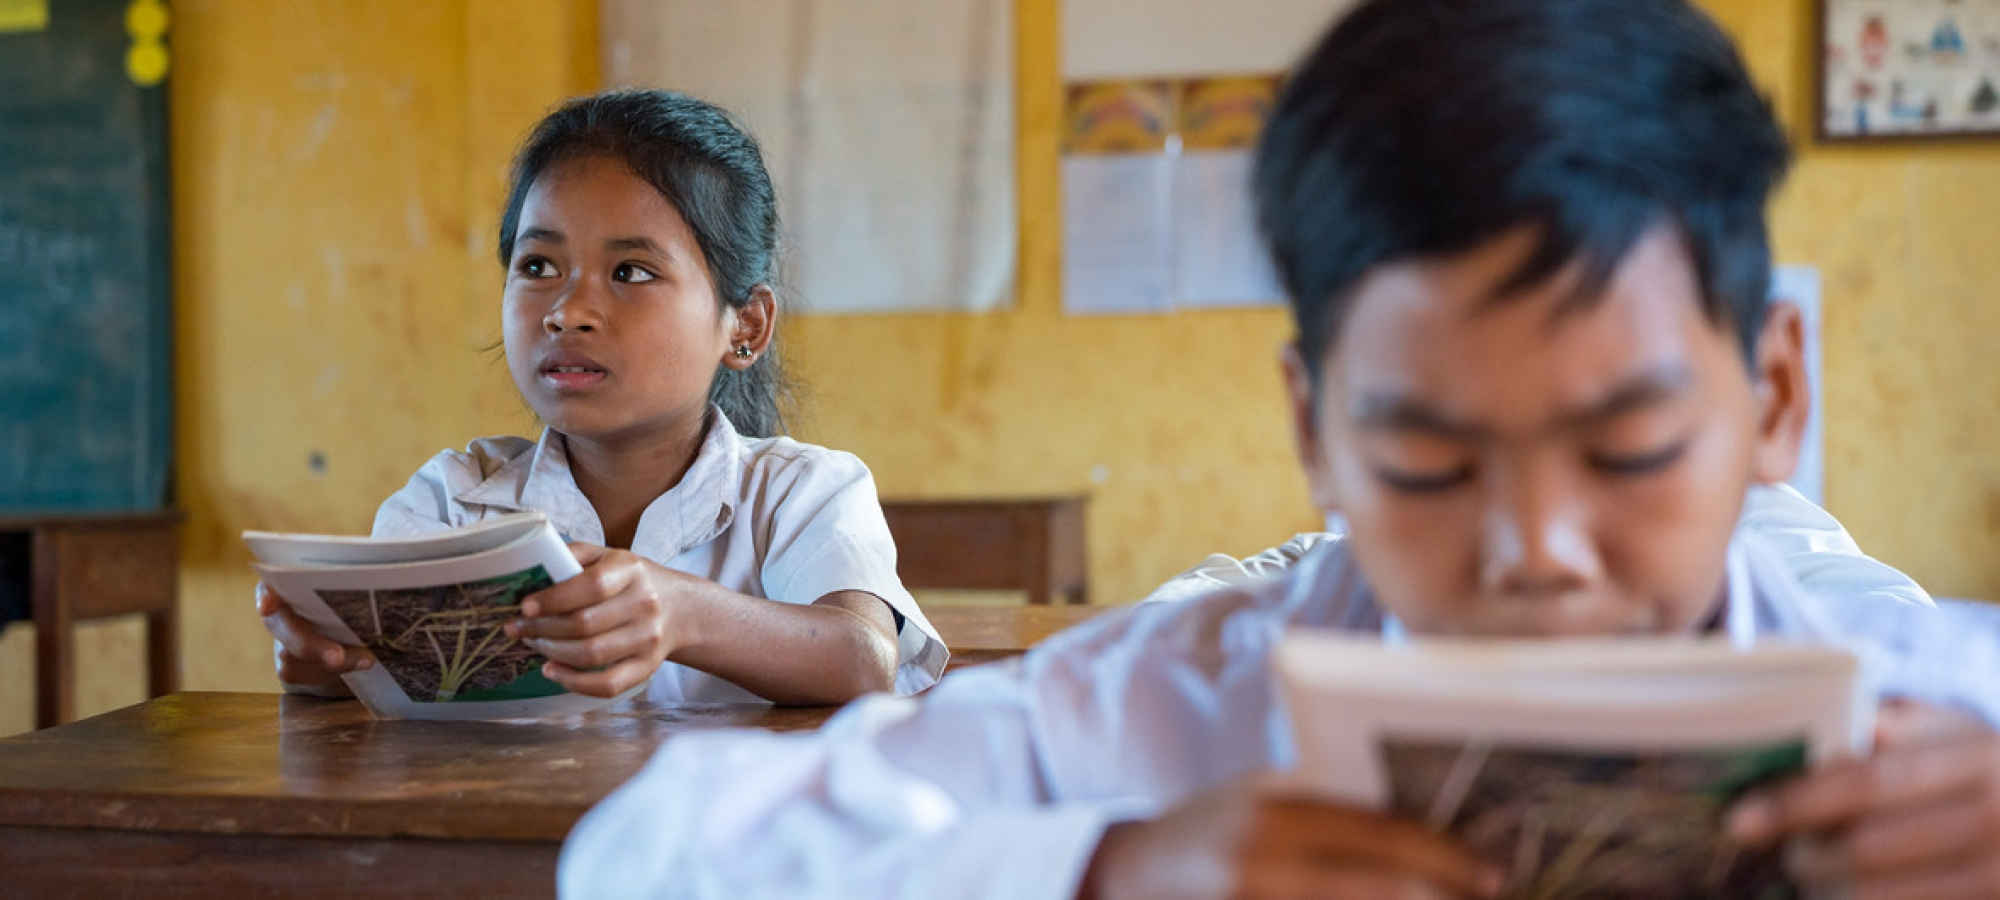 At Kres primary school, in Cambodia, the multilingual education curriculum allows children to study in their indigenous language of Kreung, while they learn the national language of Khmer (November 2018).